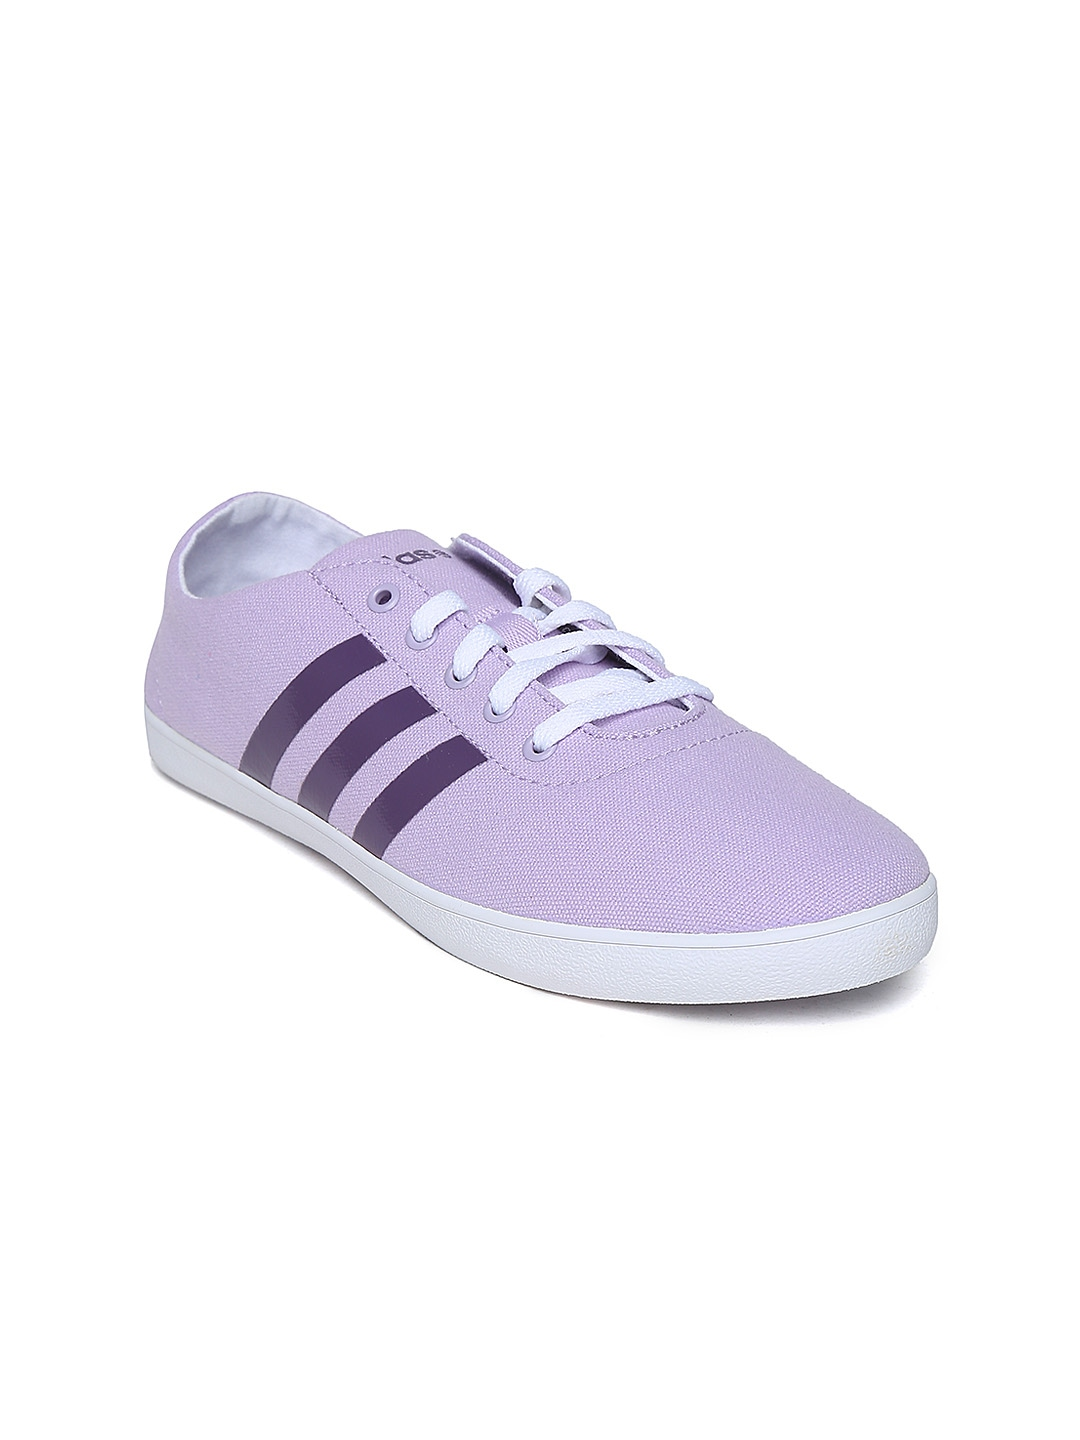 the gallery for gt adidas neo shoes for